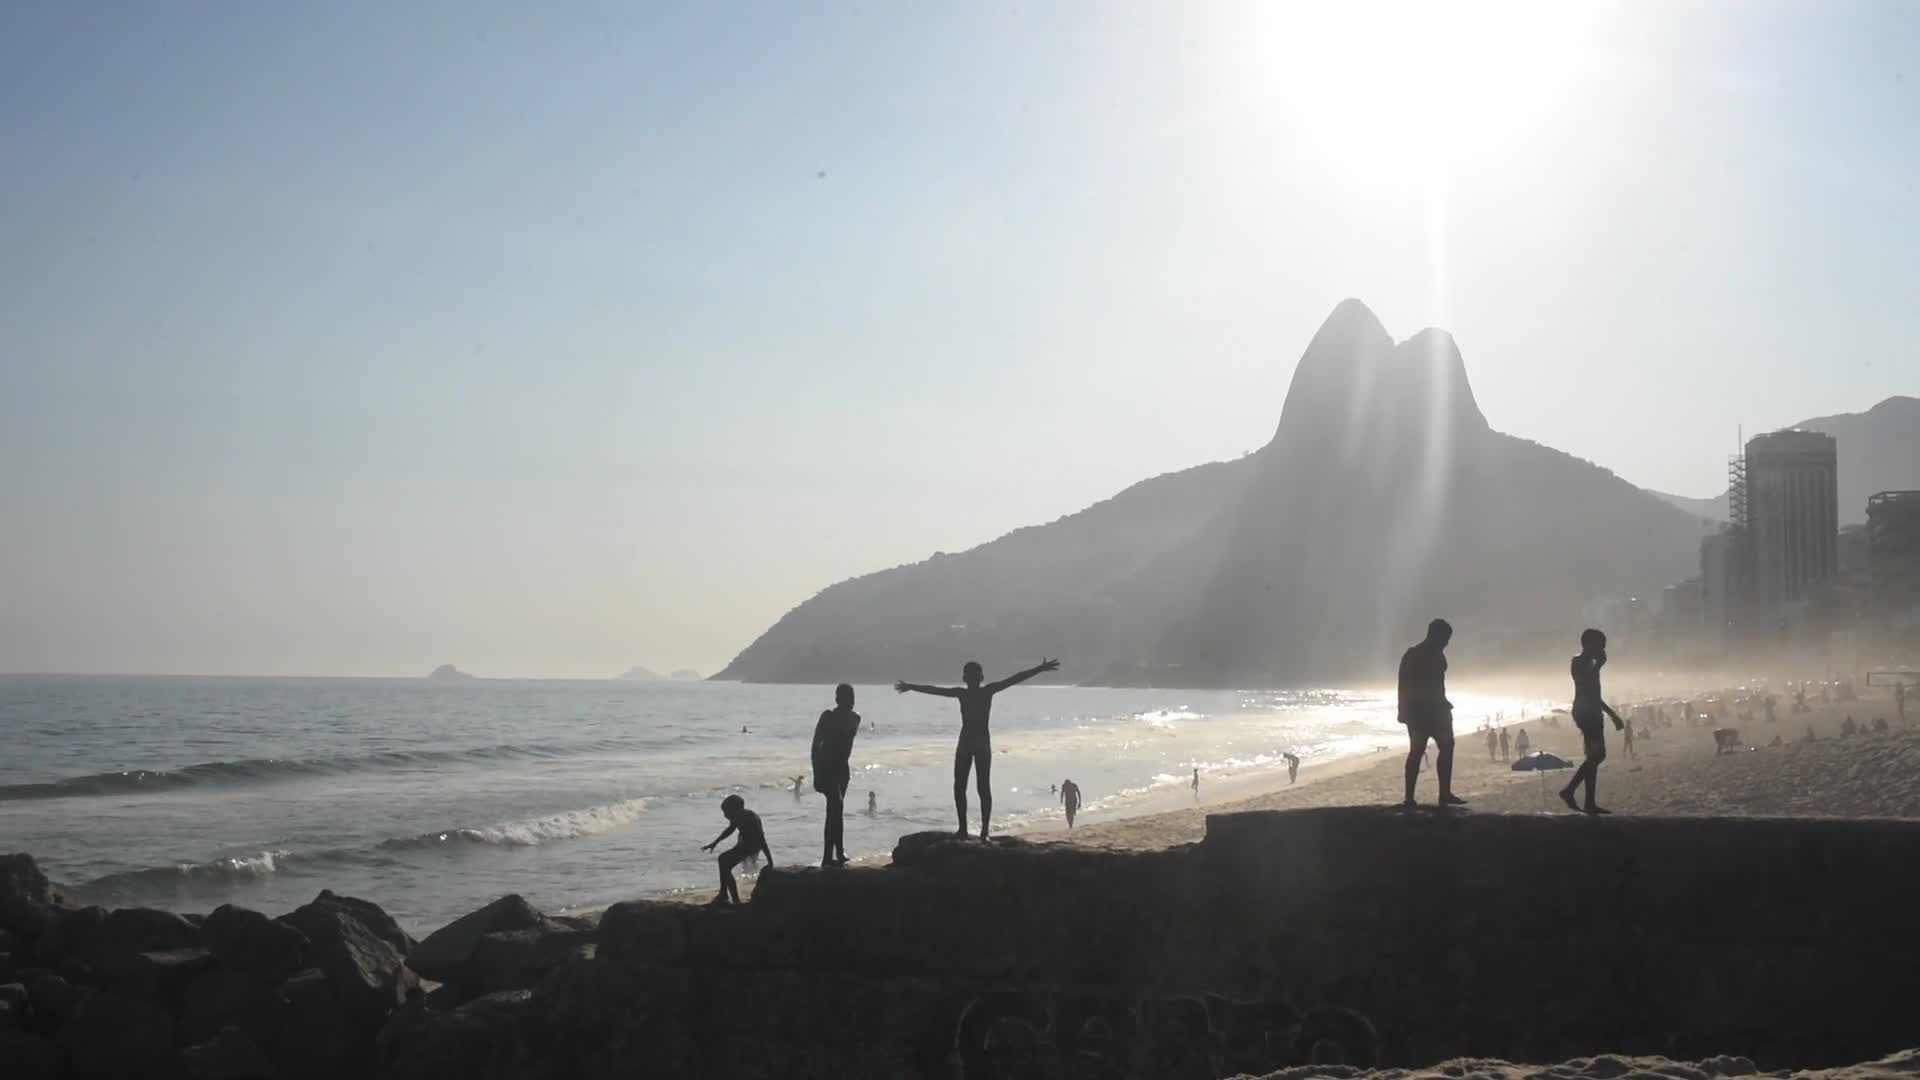 Daily life in Rio de Janeiro amid the COVID-19 pandemic